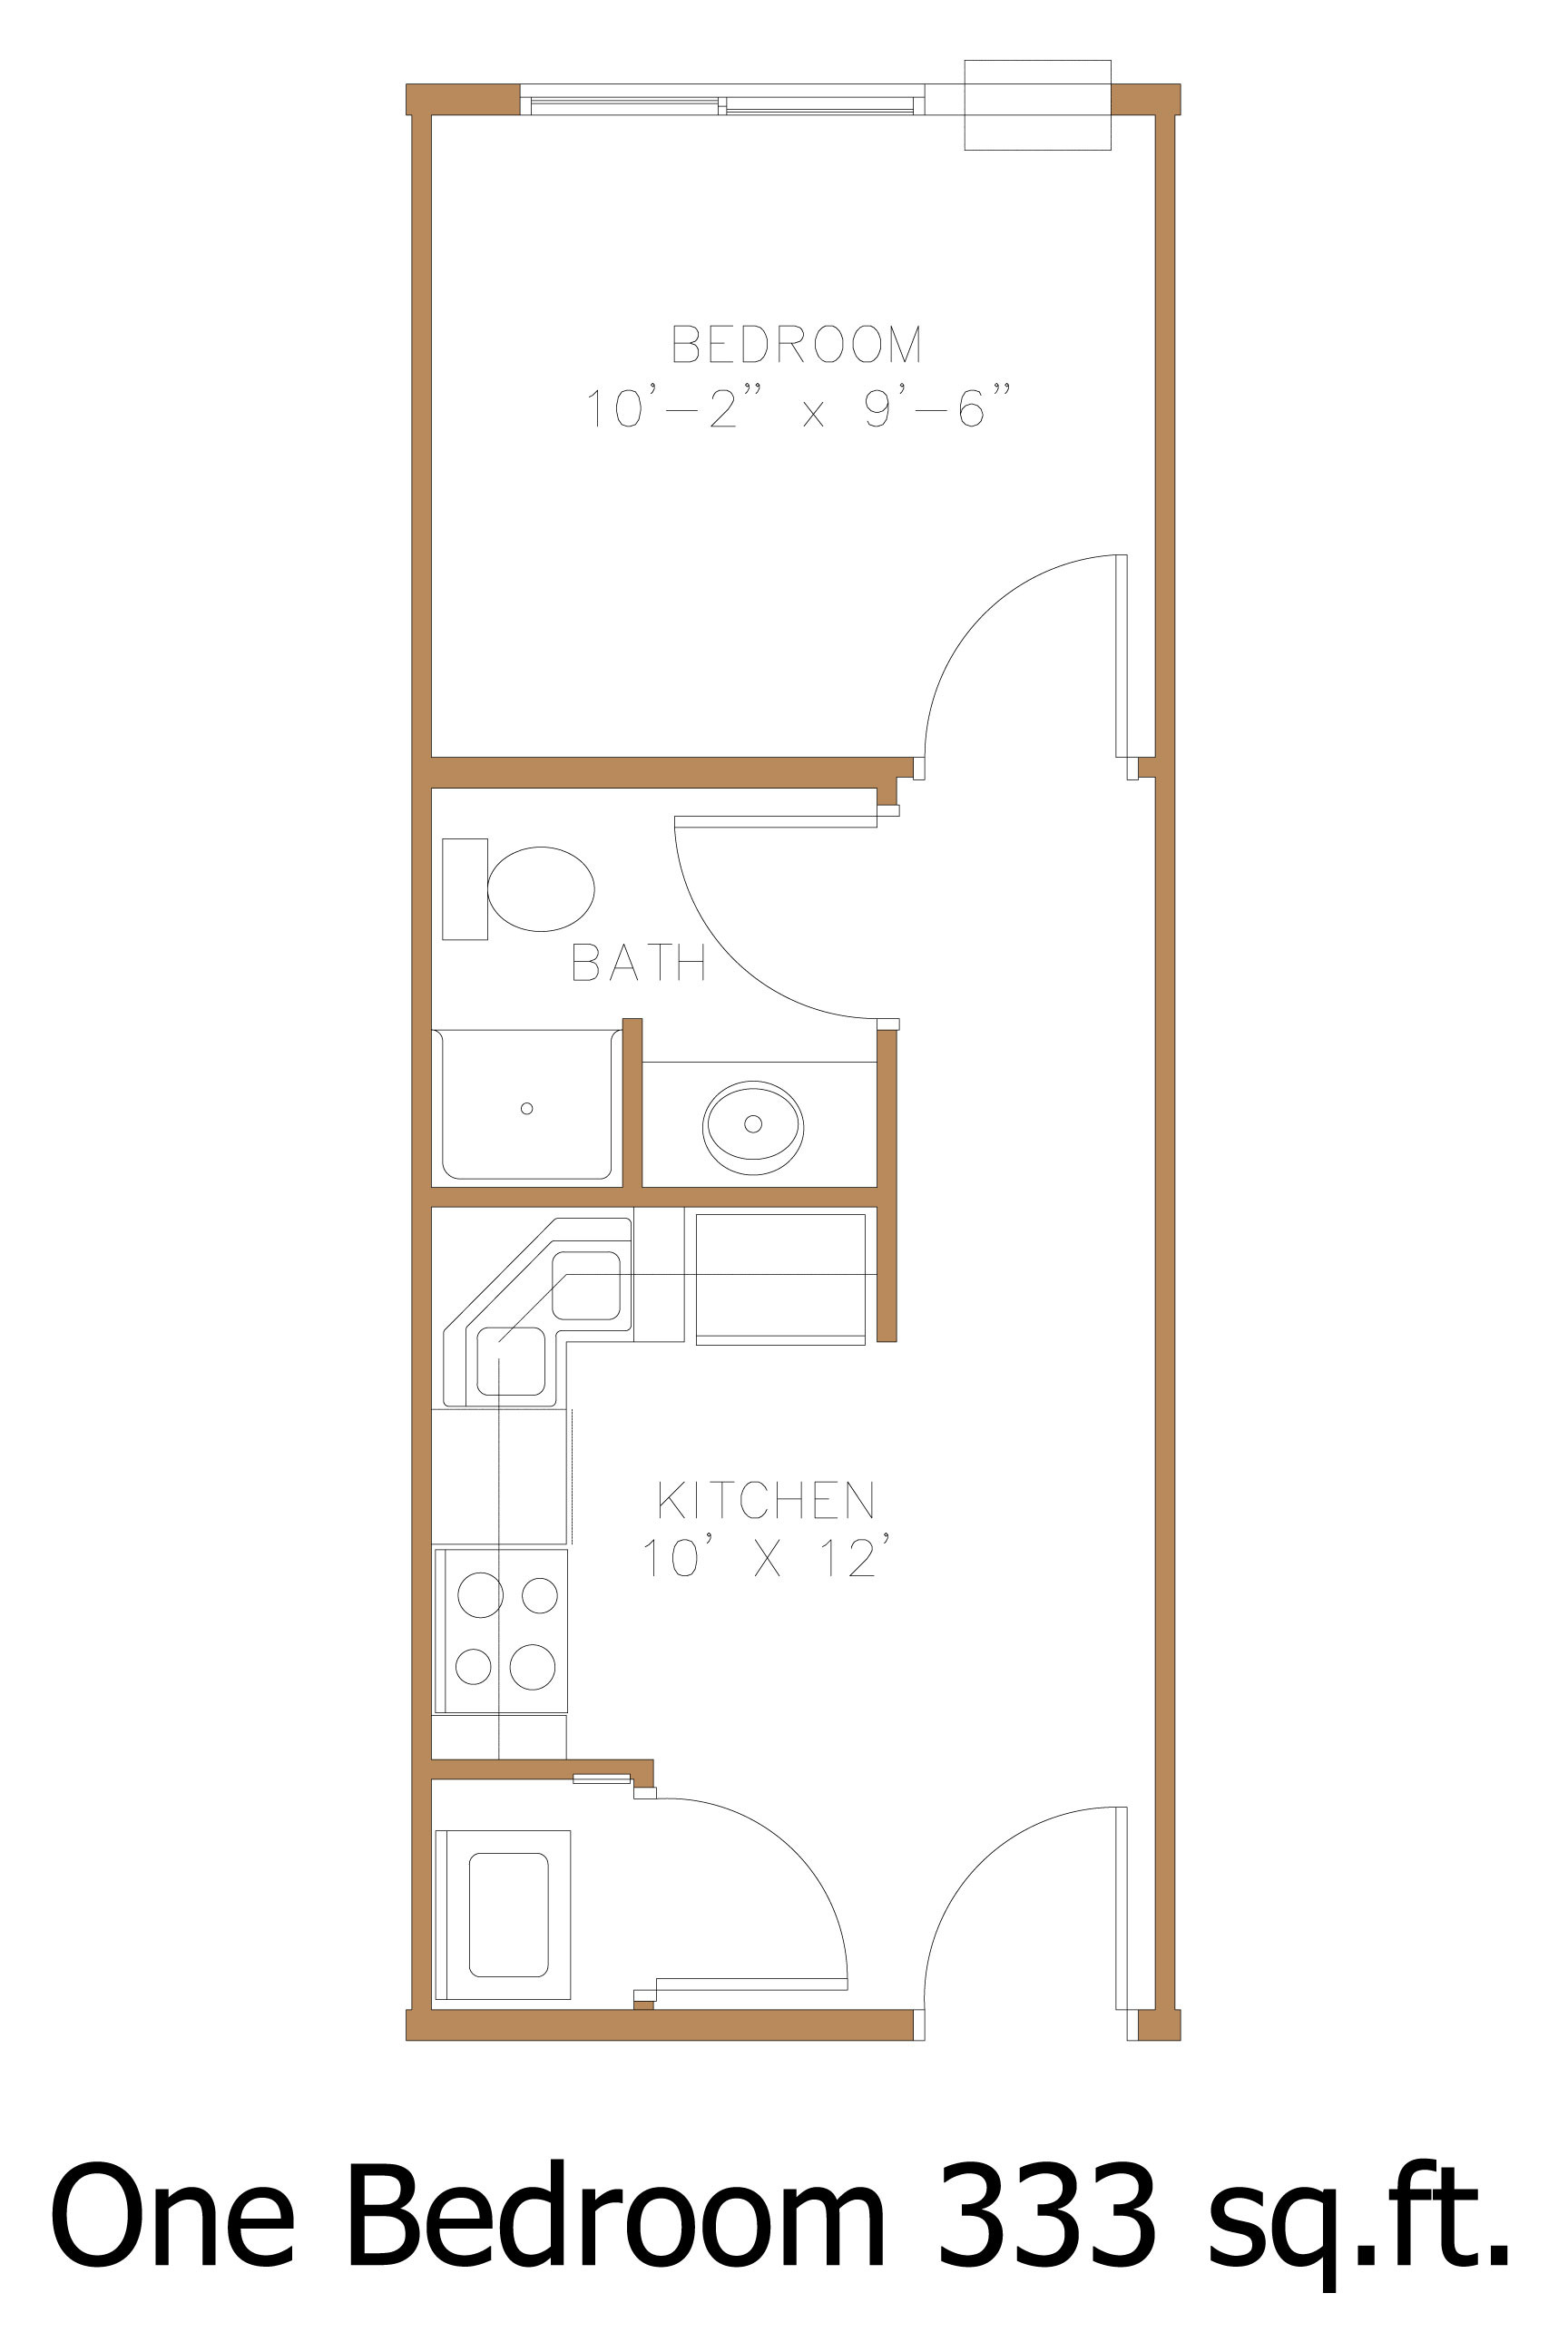 Hawley mn apartment floor plans great north properties llc - One bedroom house design ...